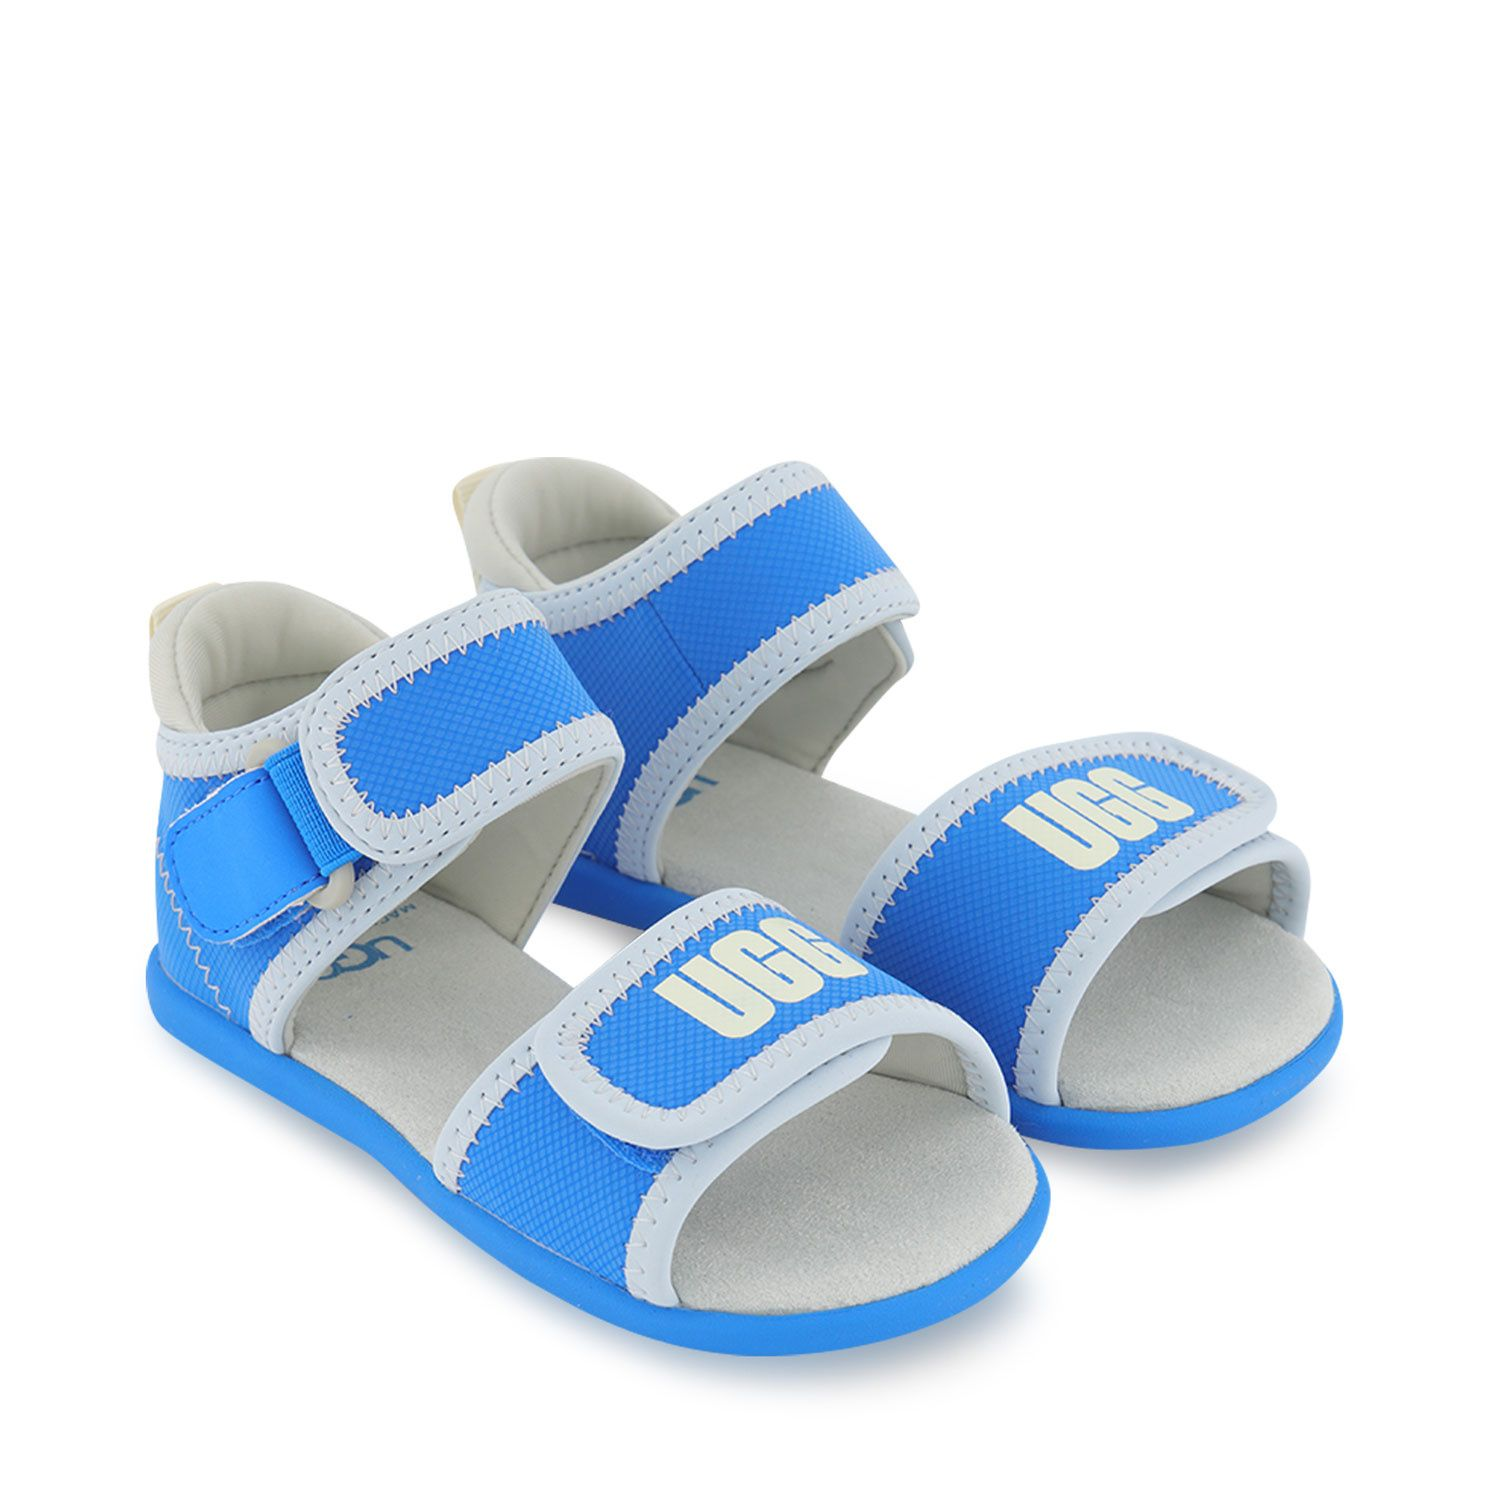 Picture of Ugg 1107984 kids sandals blue